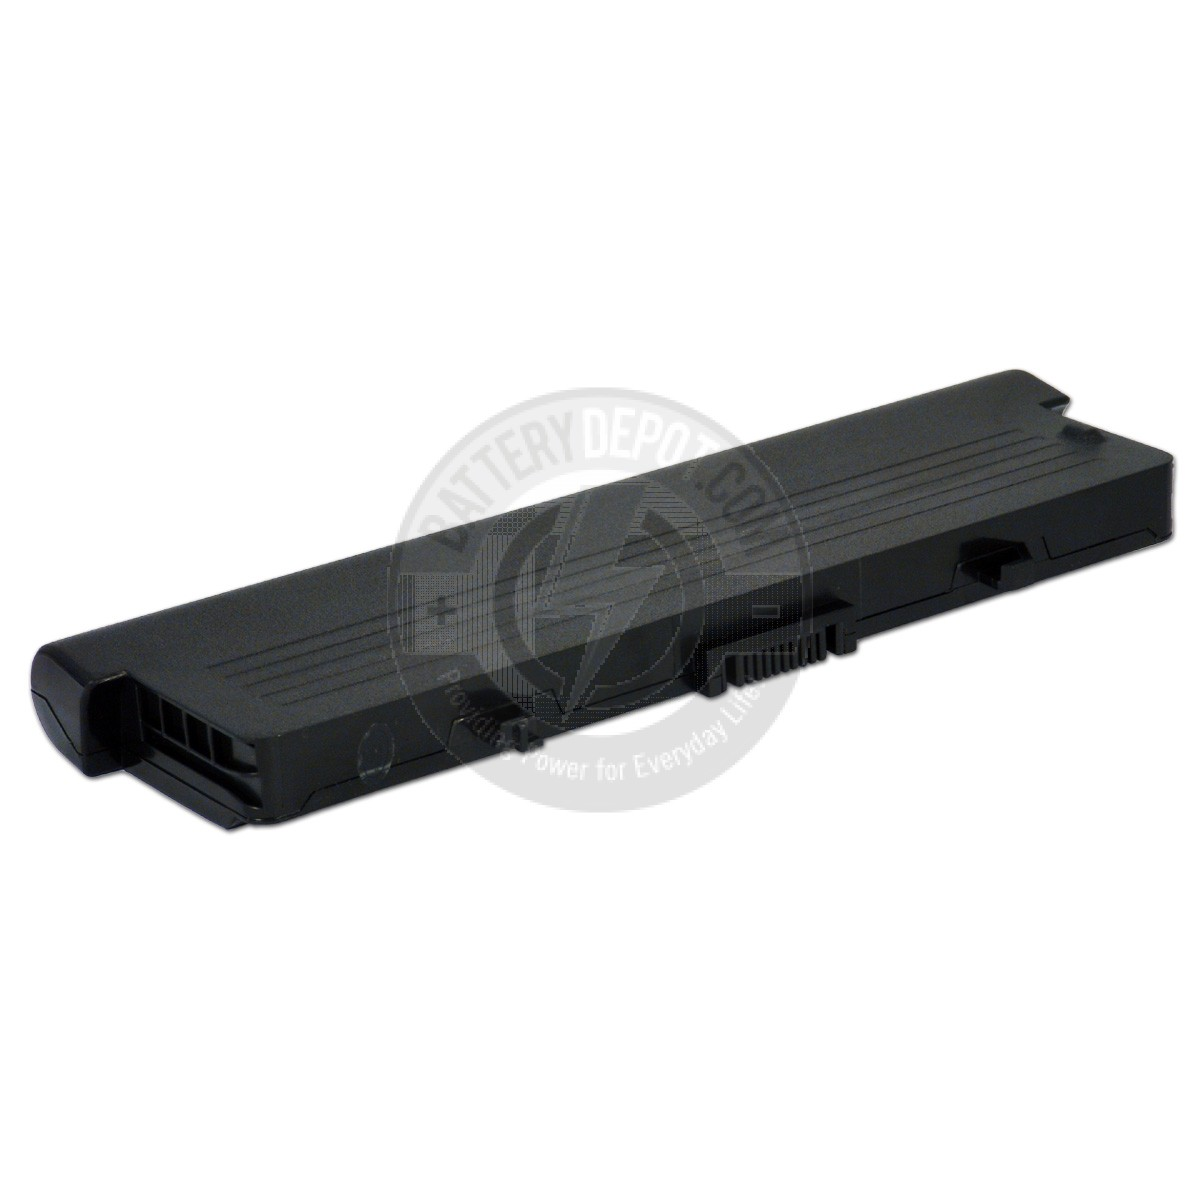 9 cell battery for Dell Laptops